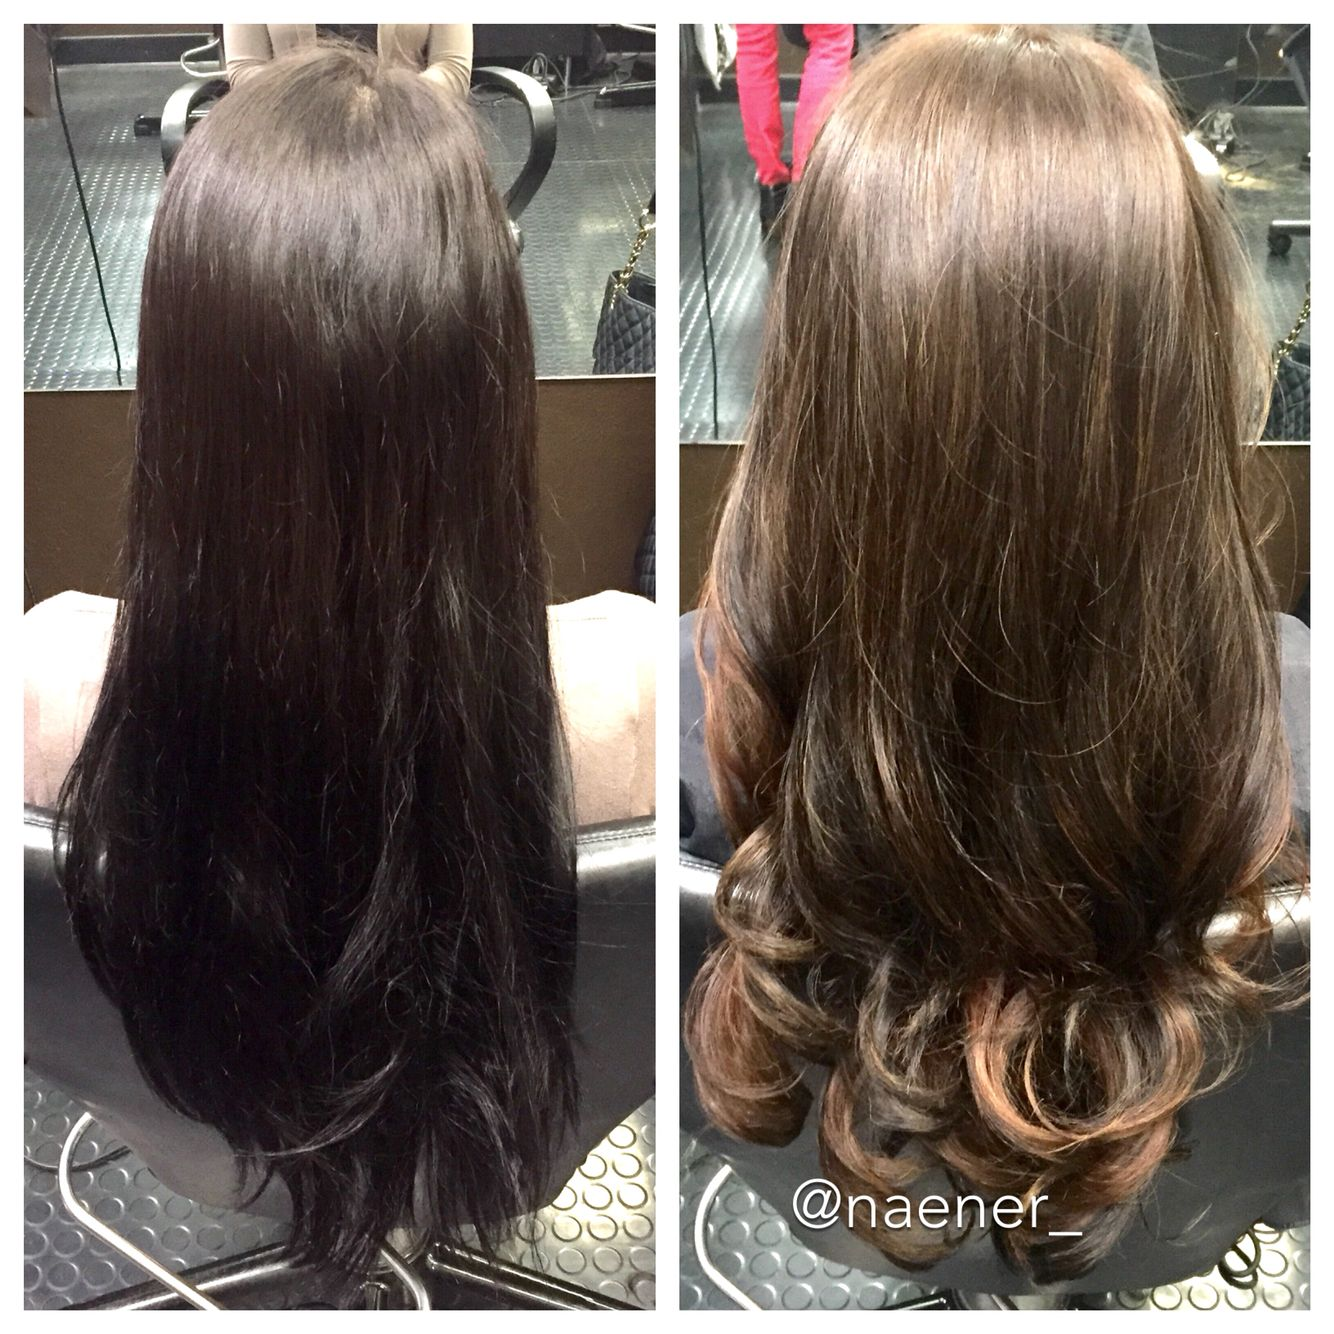 Instagram Naener Before And After Box Dyed Hair To Baby Lights Ombre Natural Ash Brown Hair Balayage Brunette Hair Natural Ash Brown Hair